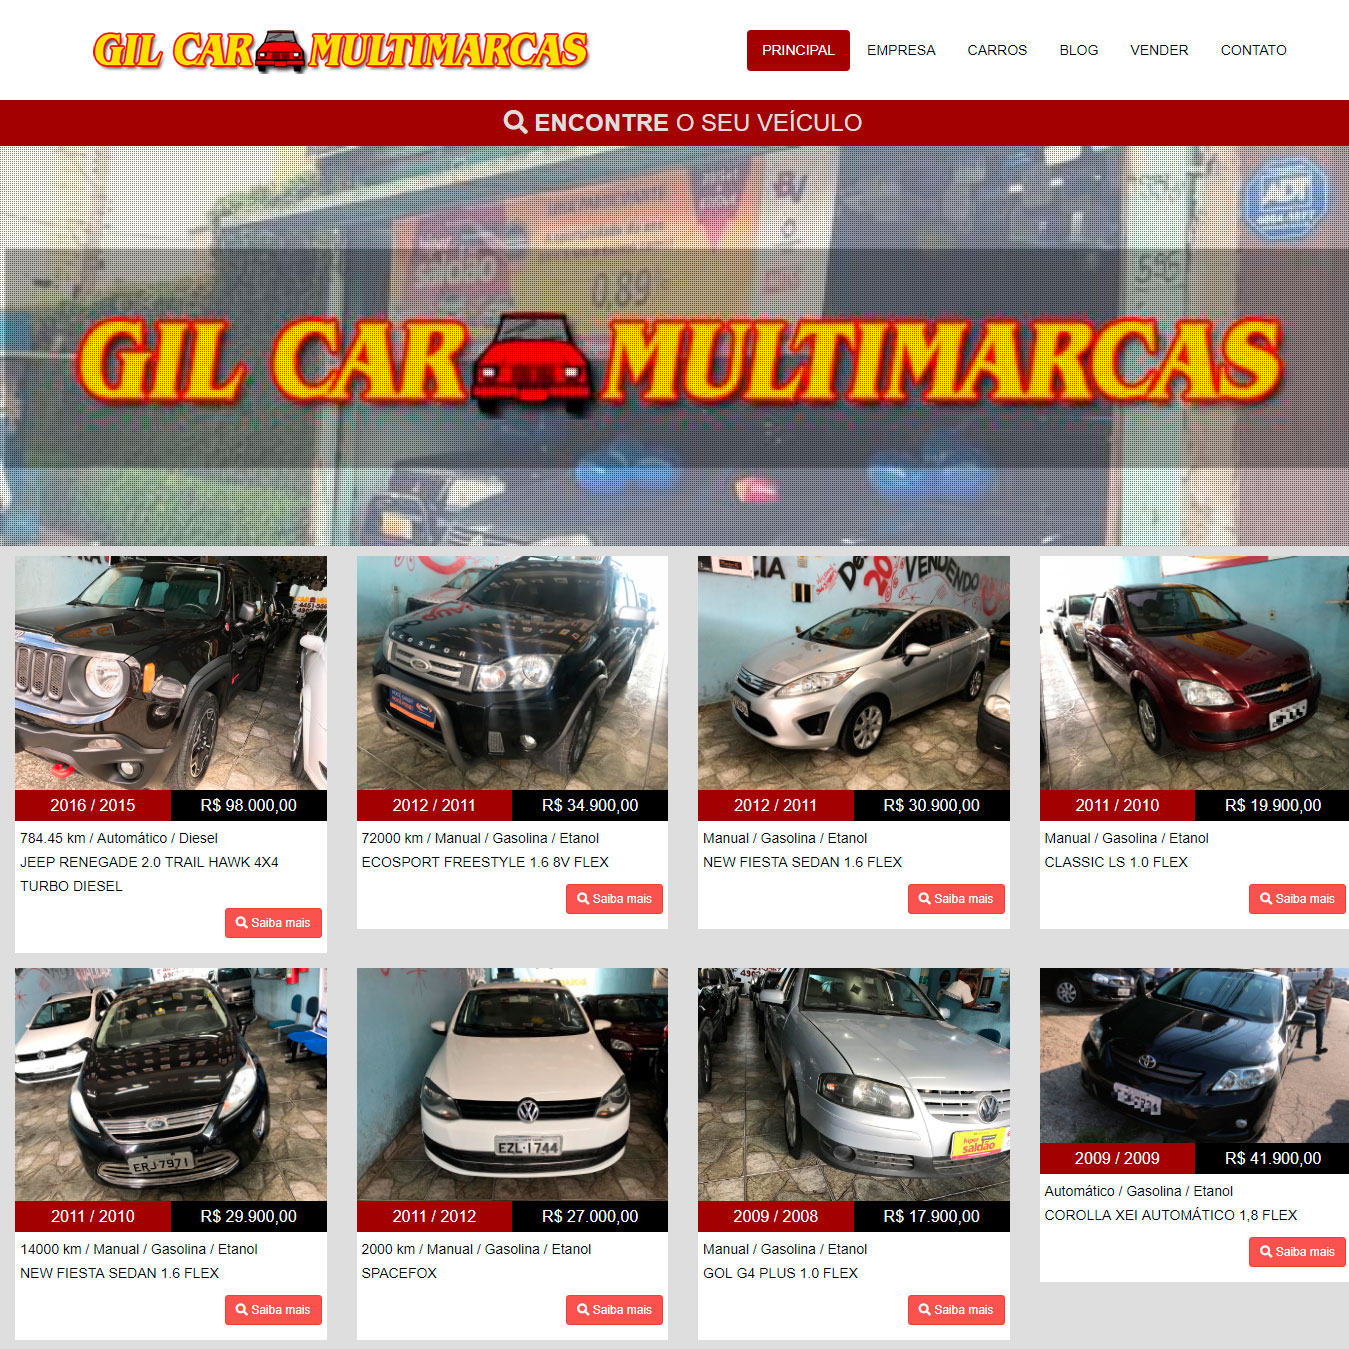 Gil Car Multimarcas